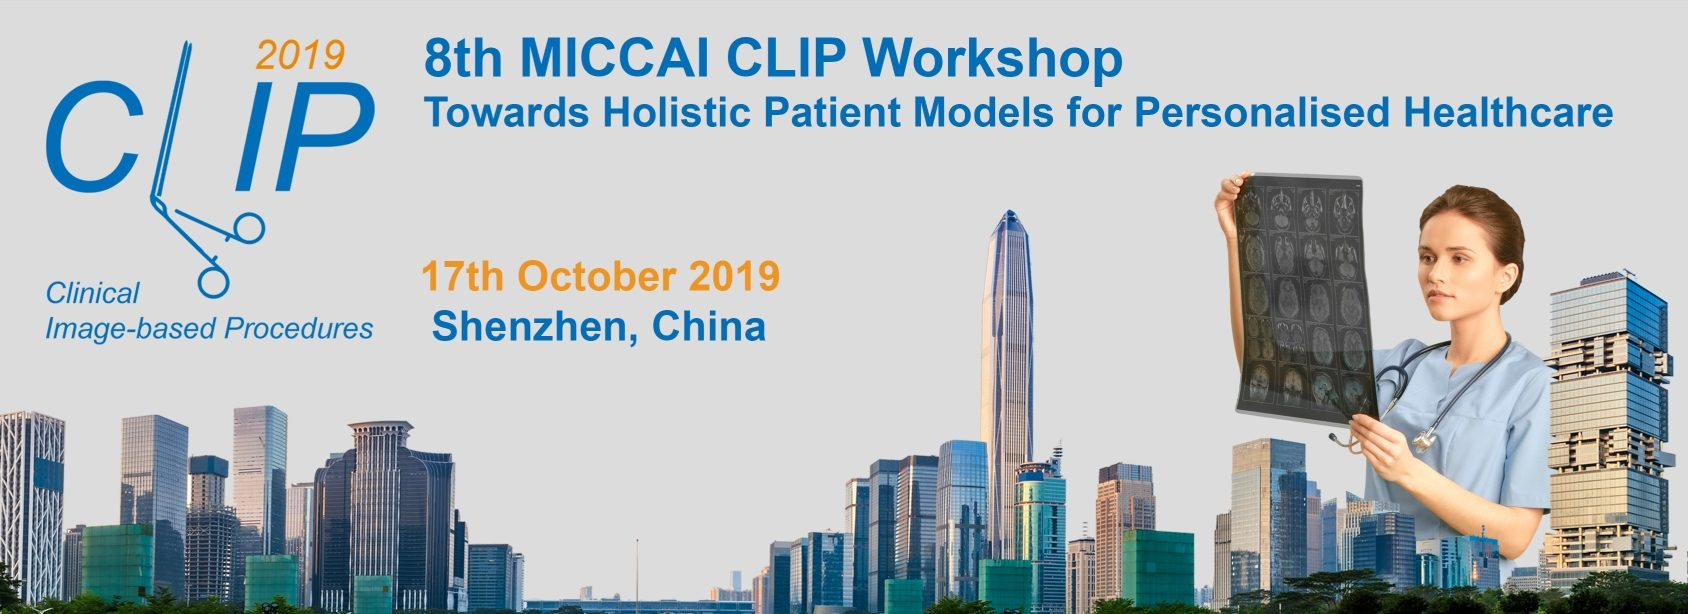 CLIP 2019 – Towards Holistic Patient Models for Personalised Healthcare